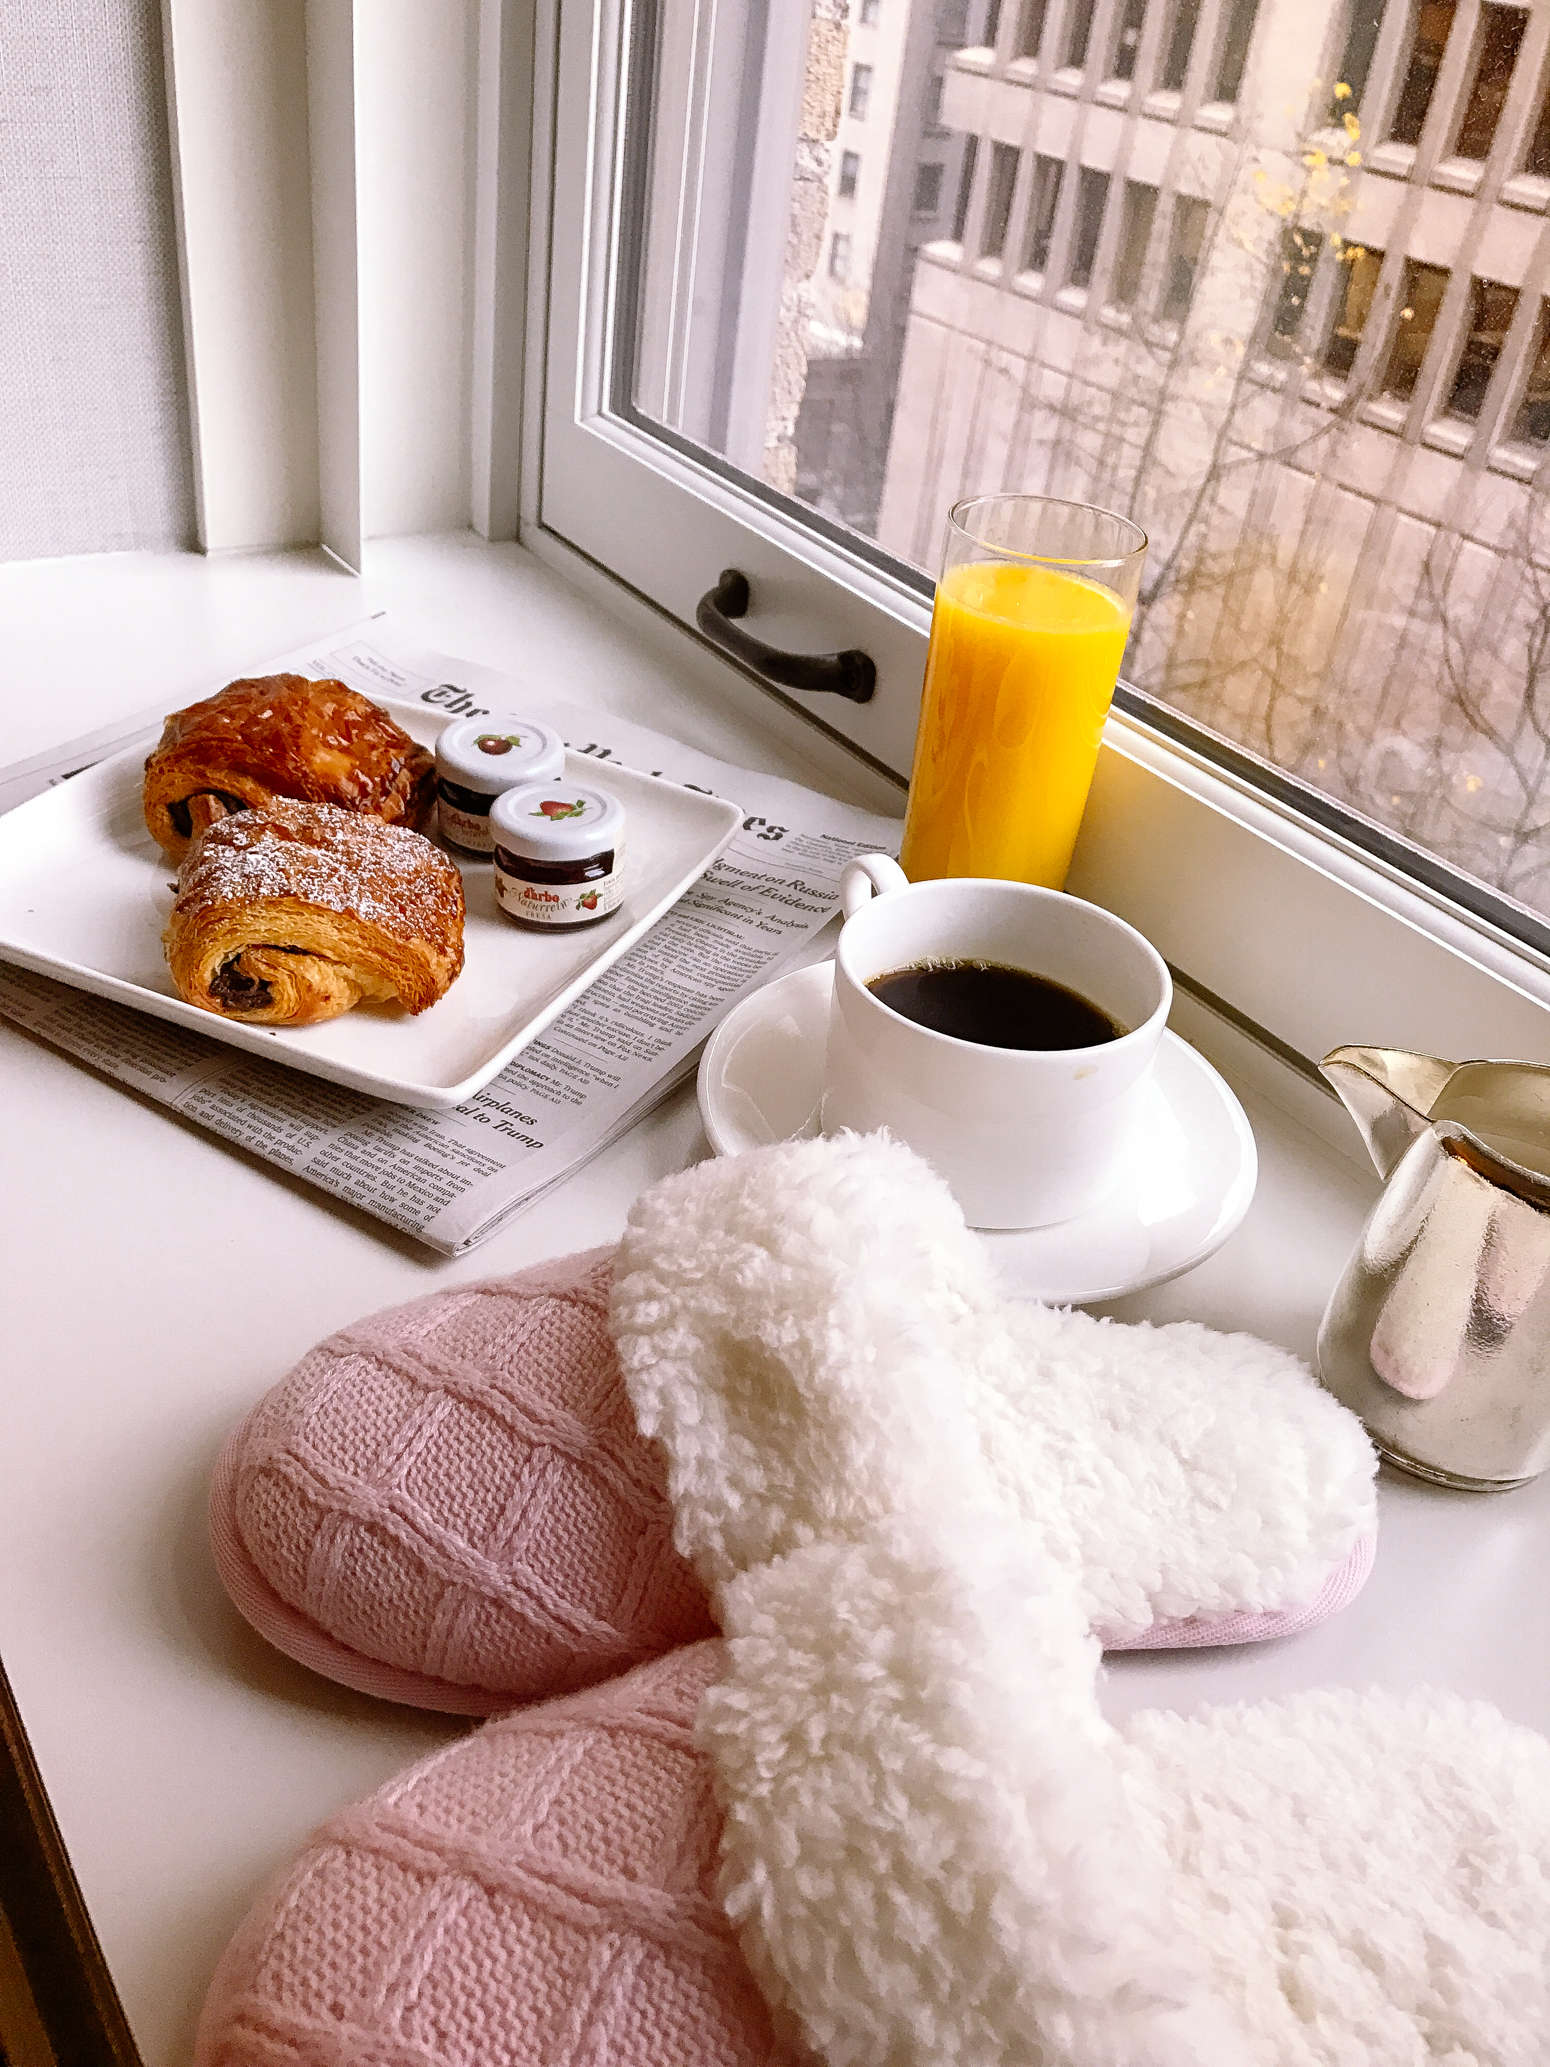 Blondie in the City | Victoria's Secret Pajamas, Room Service | Fairmont Olympic hotel in Seattle